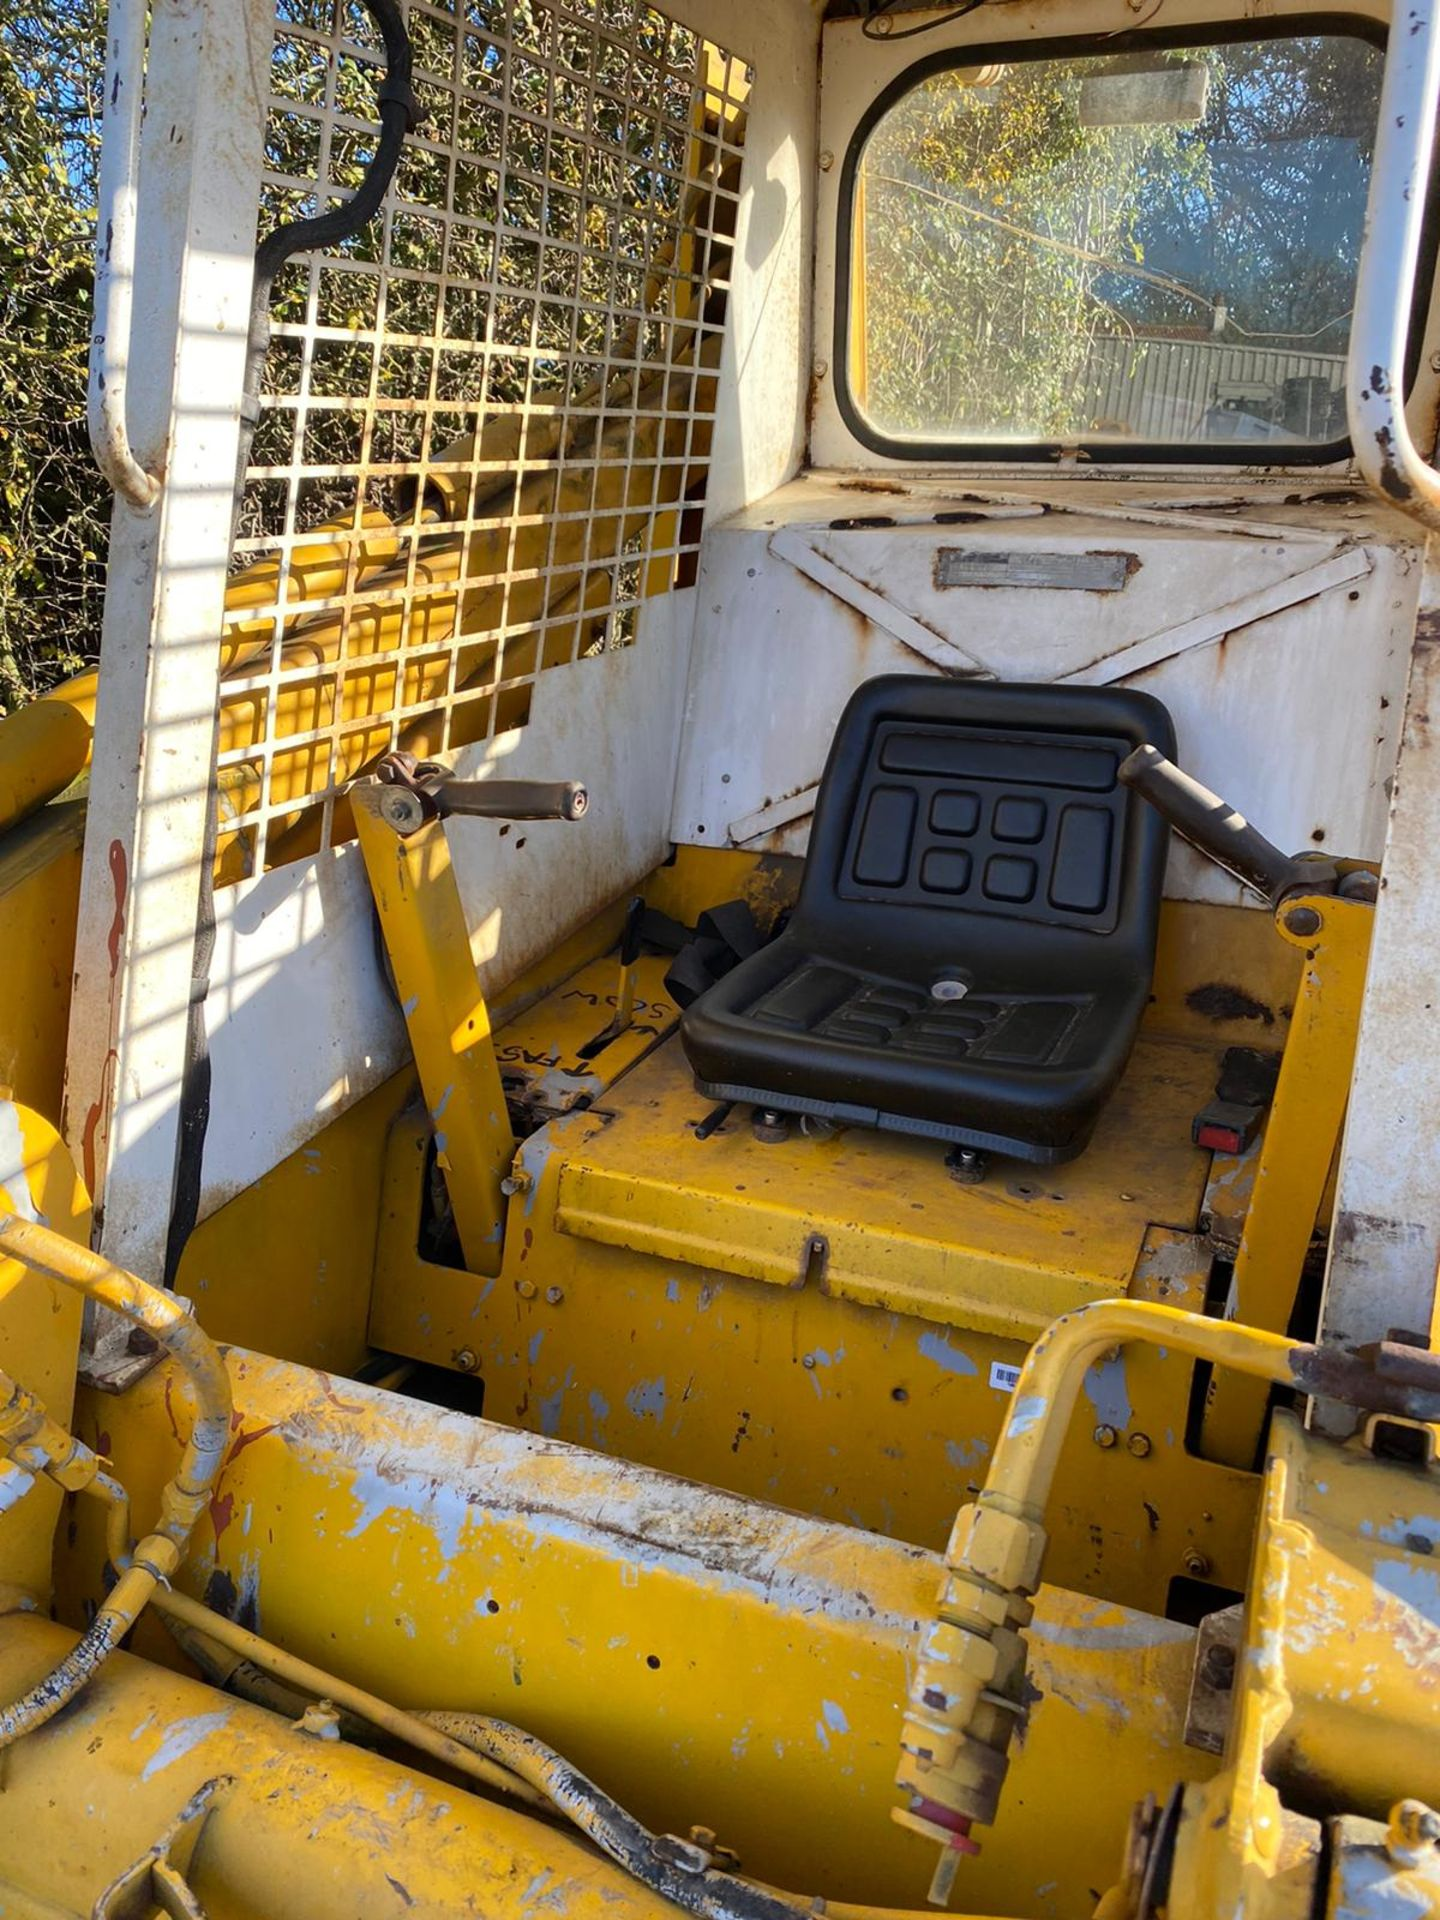 CASE 1840 SKID STEER LOADER, STARTS FIRST TURN OF THE KEY, RUNS, DRIVES AND LIFTS *PLUS VAT* - Image 4 of 9